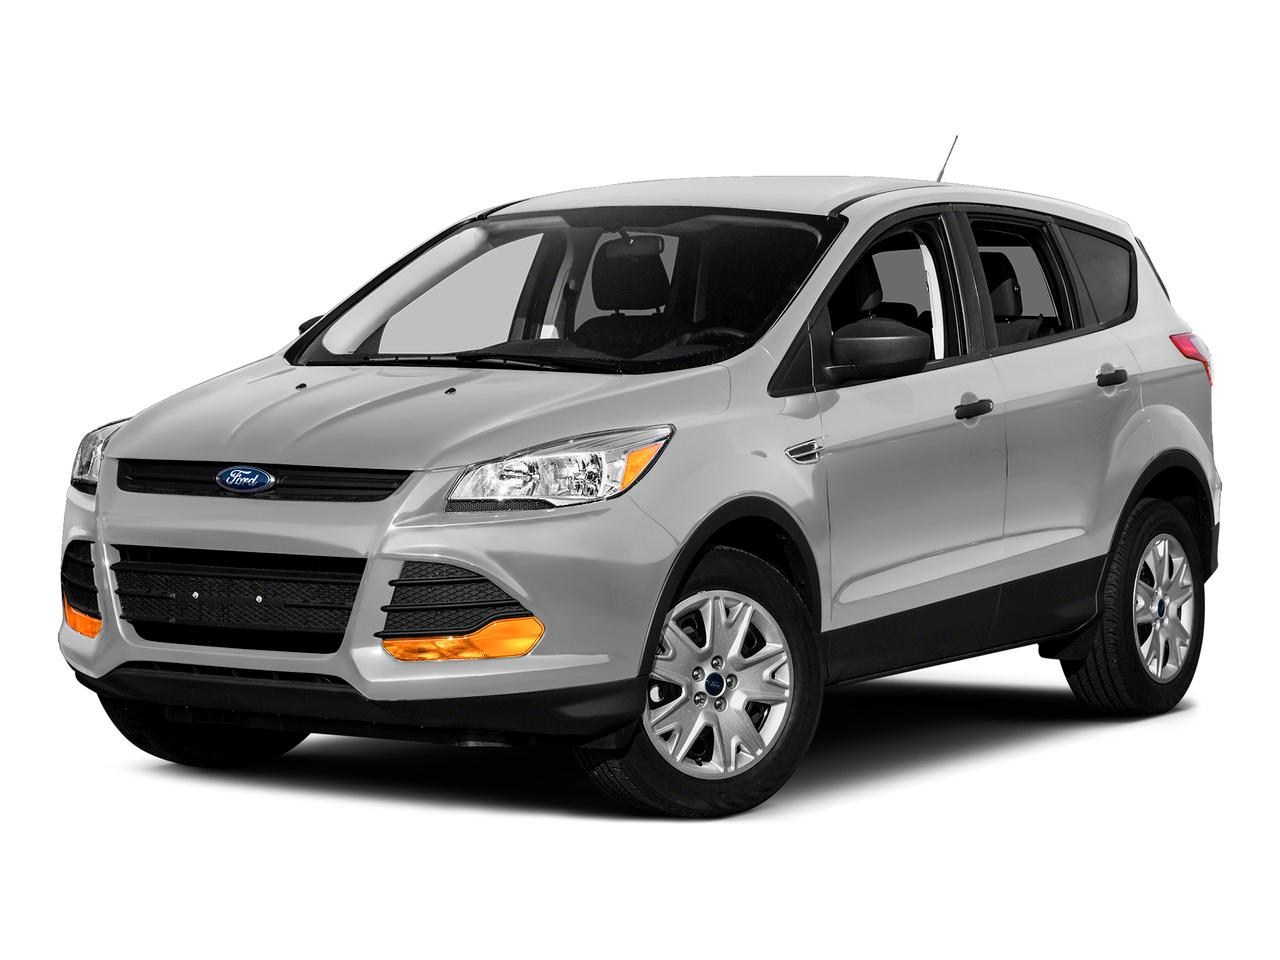 2015 Ford Escape Vehicle Photo in Mechanicsburg, PA 17055